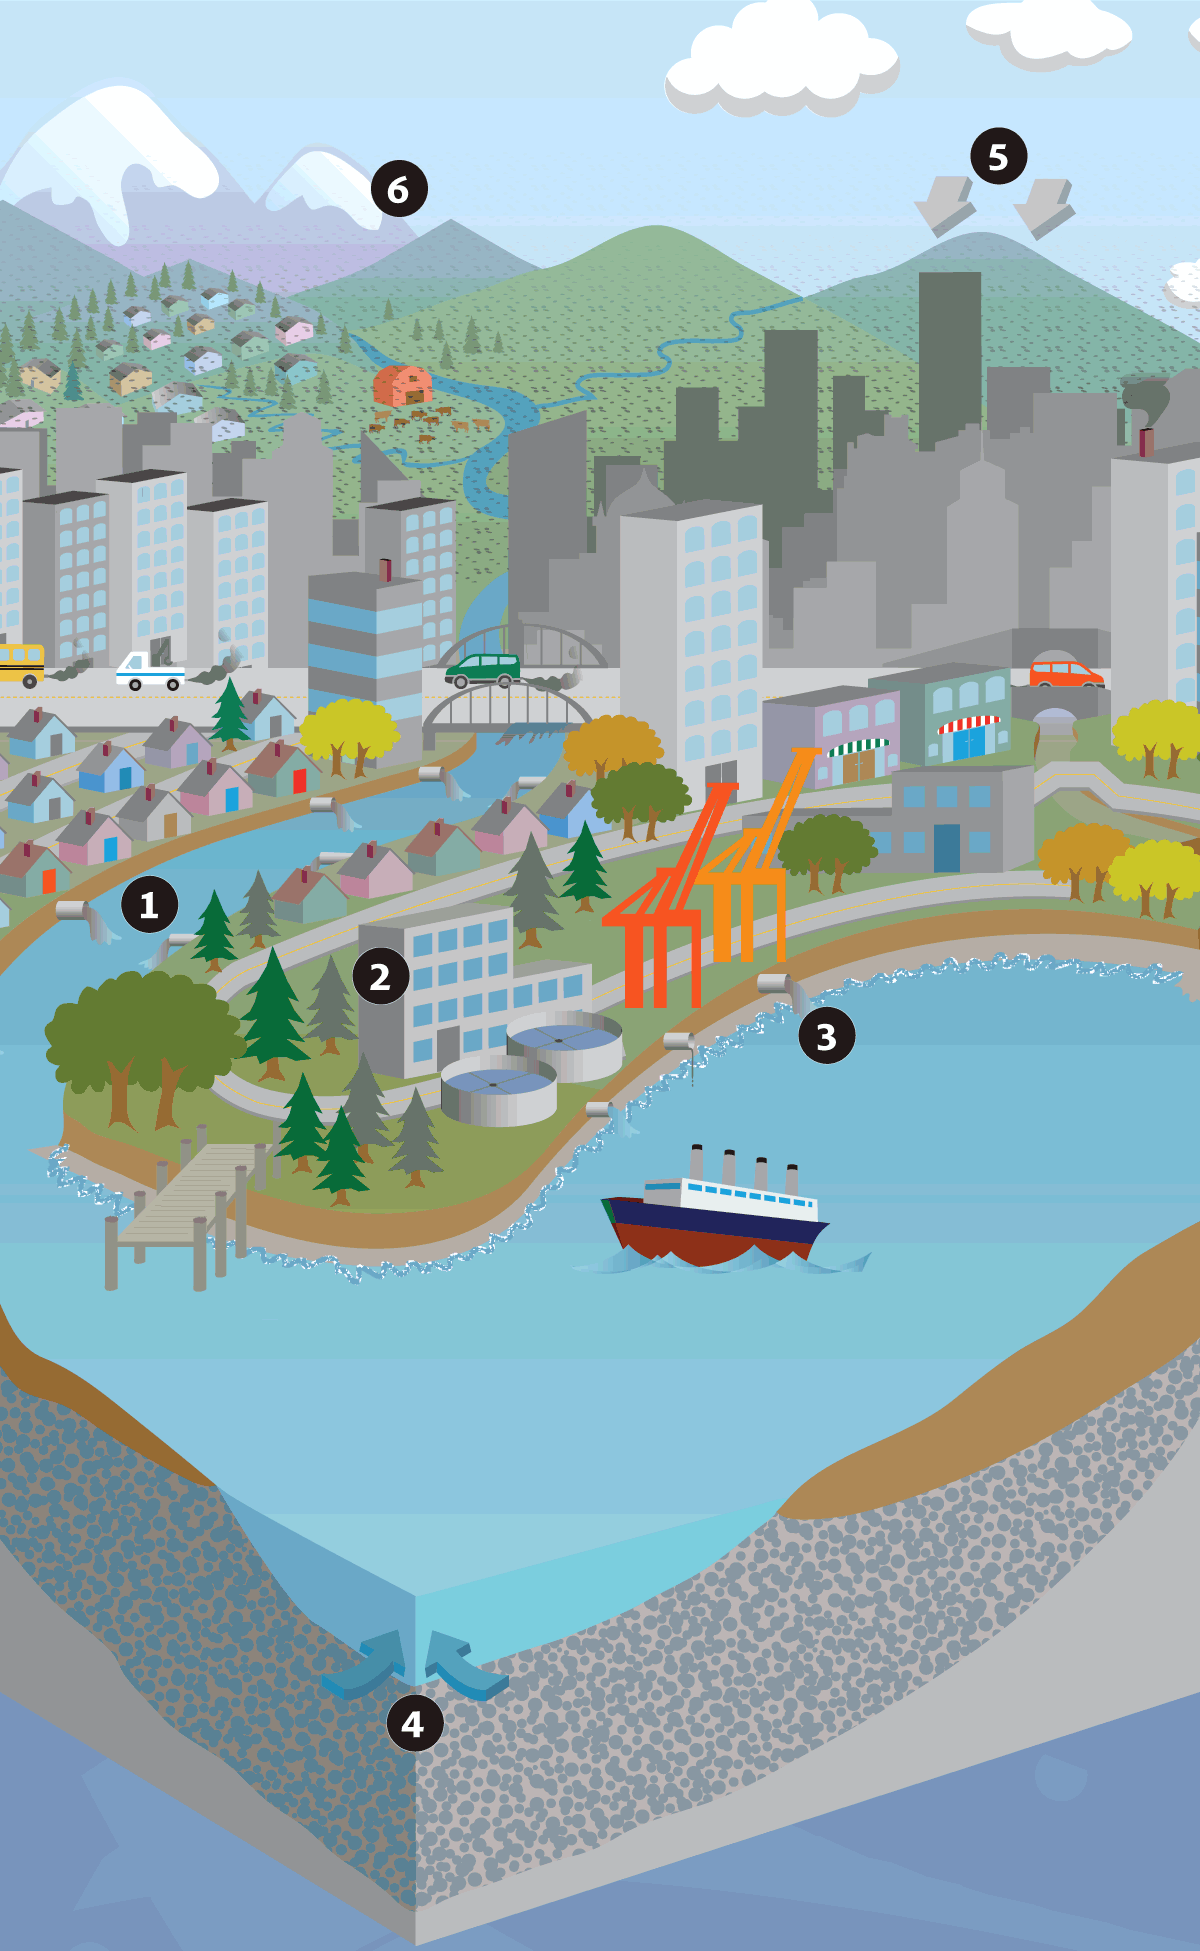 Illustration of Puget Sound with key showing pathways that transport pollutants into Puget Sound, rivers, and lakes in our region.